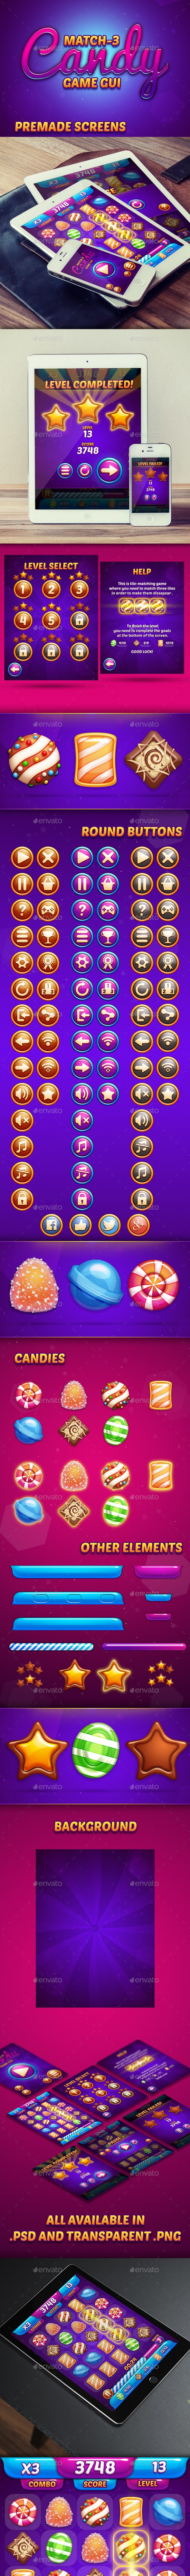 Match-3 Candy Game GUI - User Interfaces Game Assets